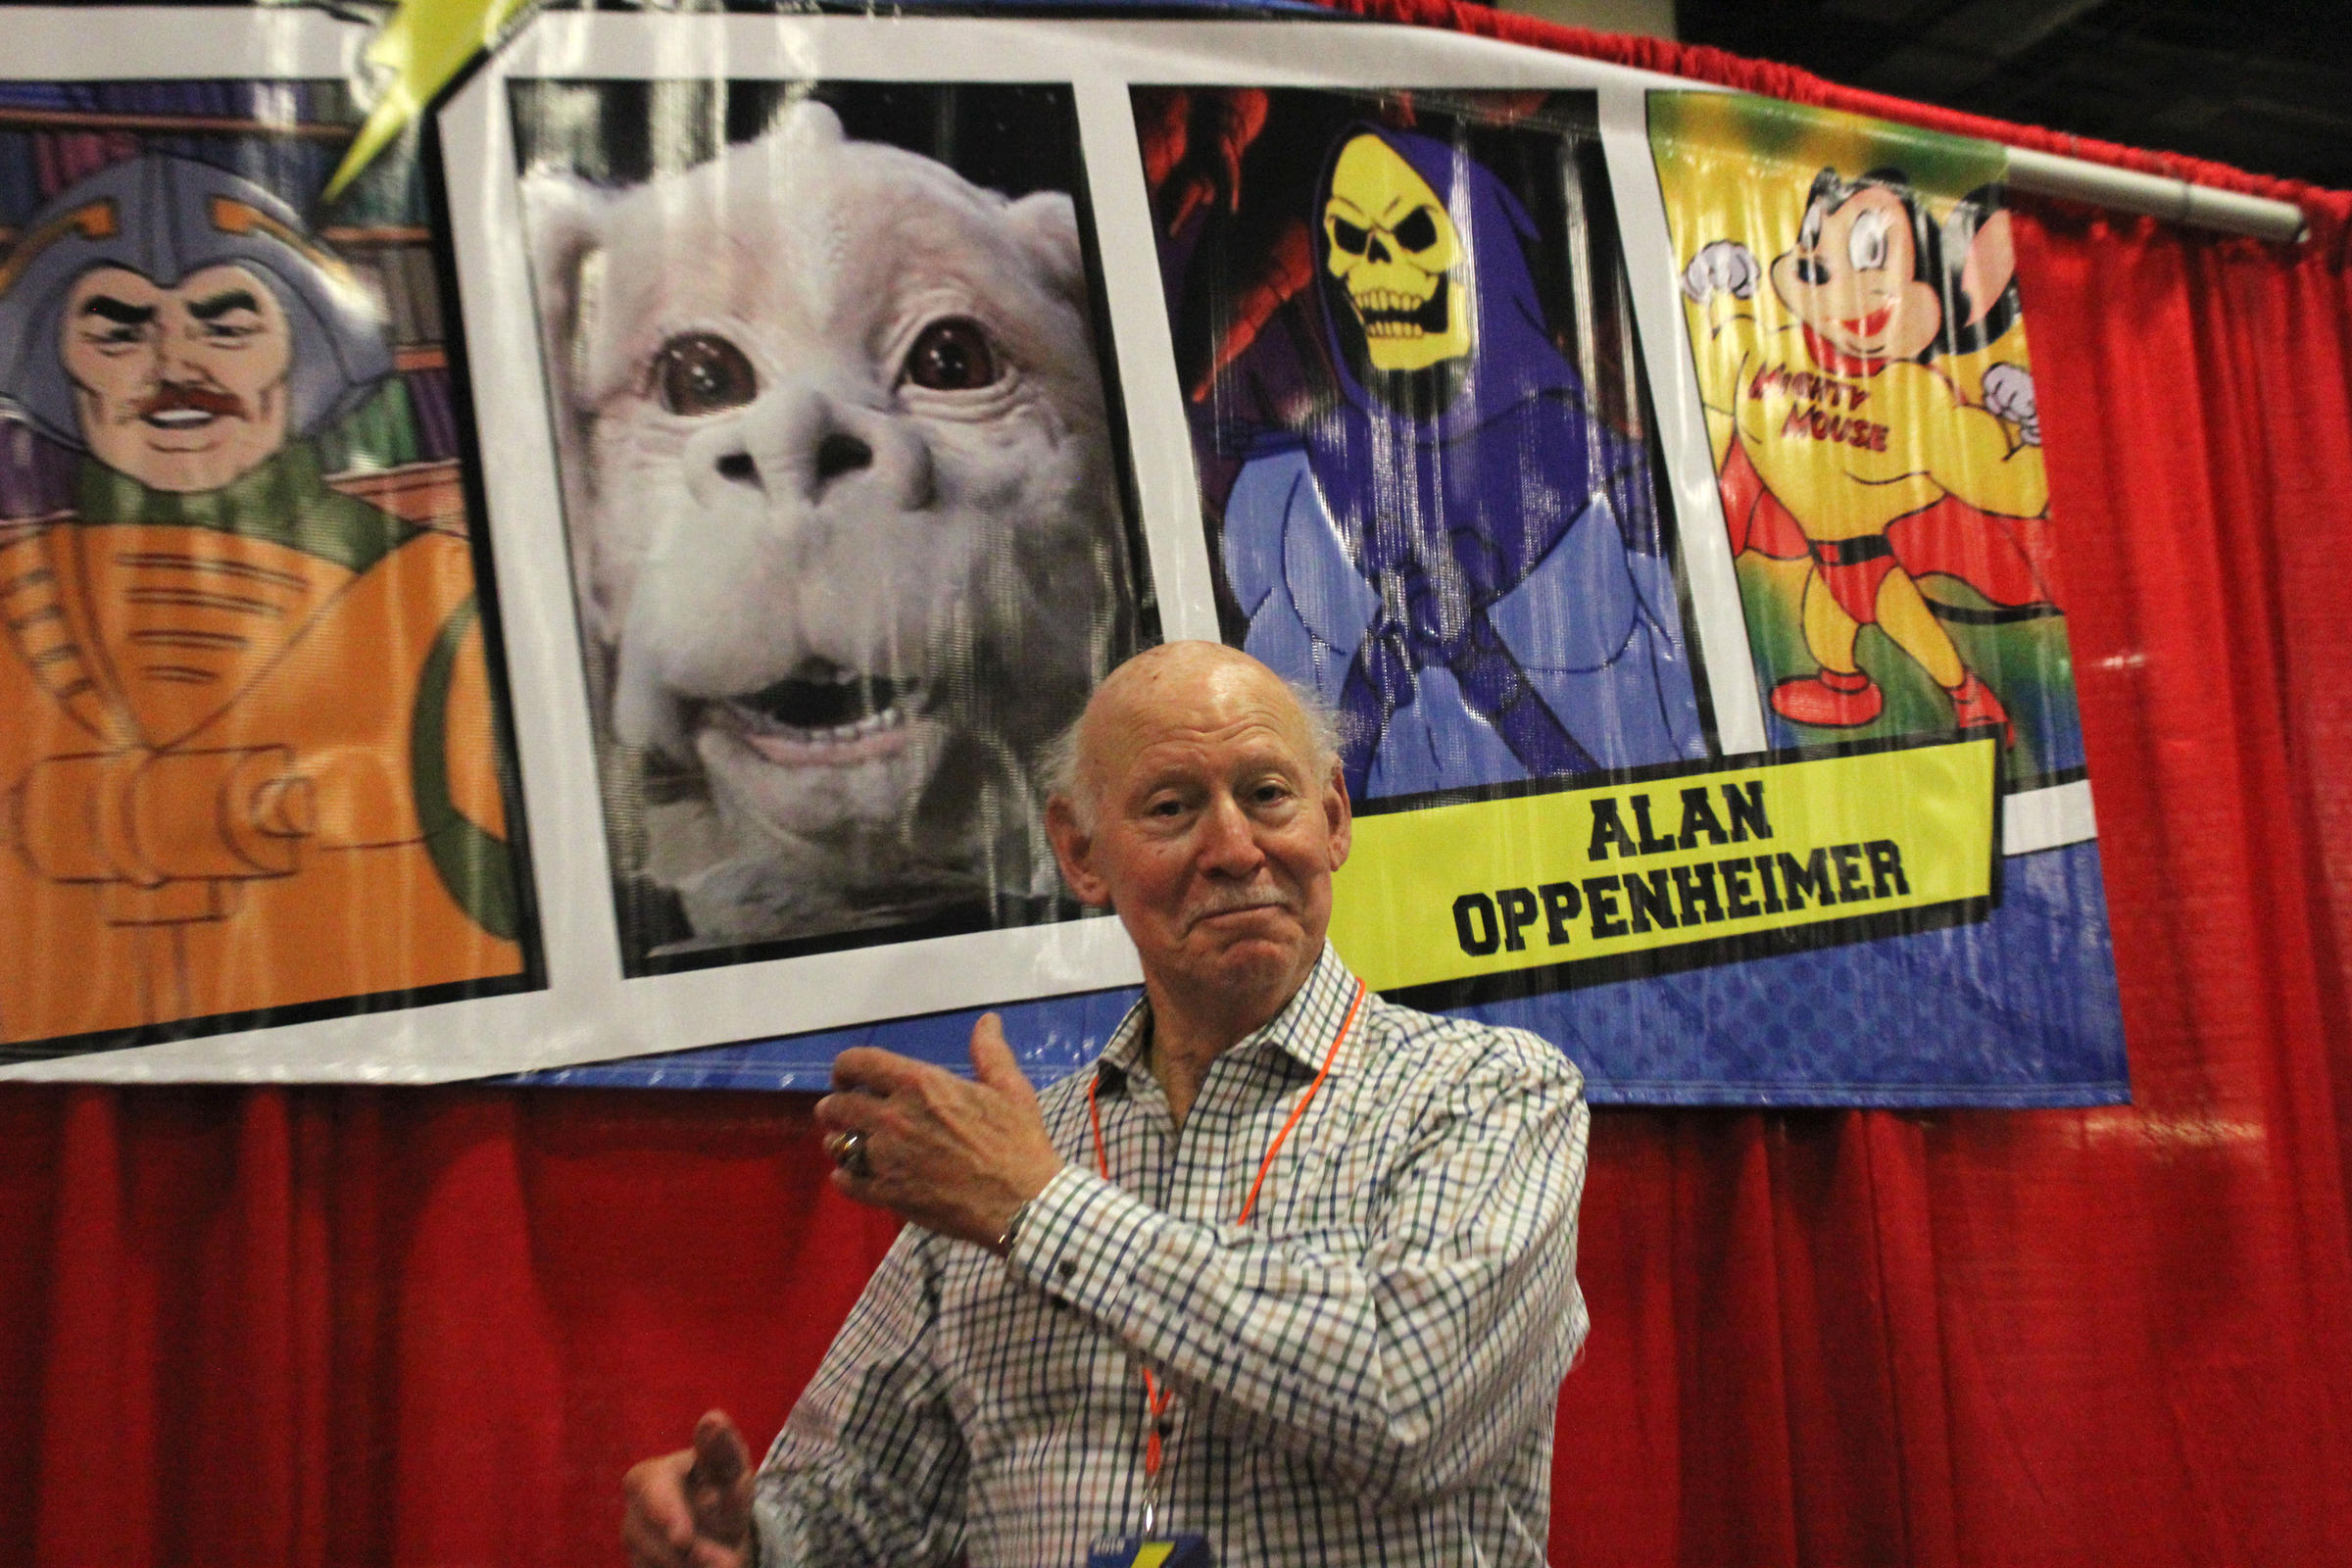 You Voiced My Childhood Decades Later Skeletor Impacts His 80s Fans At Florida Supercon Wjct News (a stockbroker) and irene (maiden name, rothschild) oppenheimer. decades later skeletor impacts his 80s